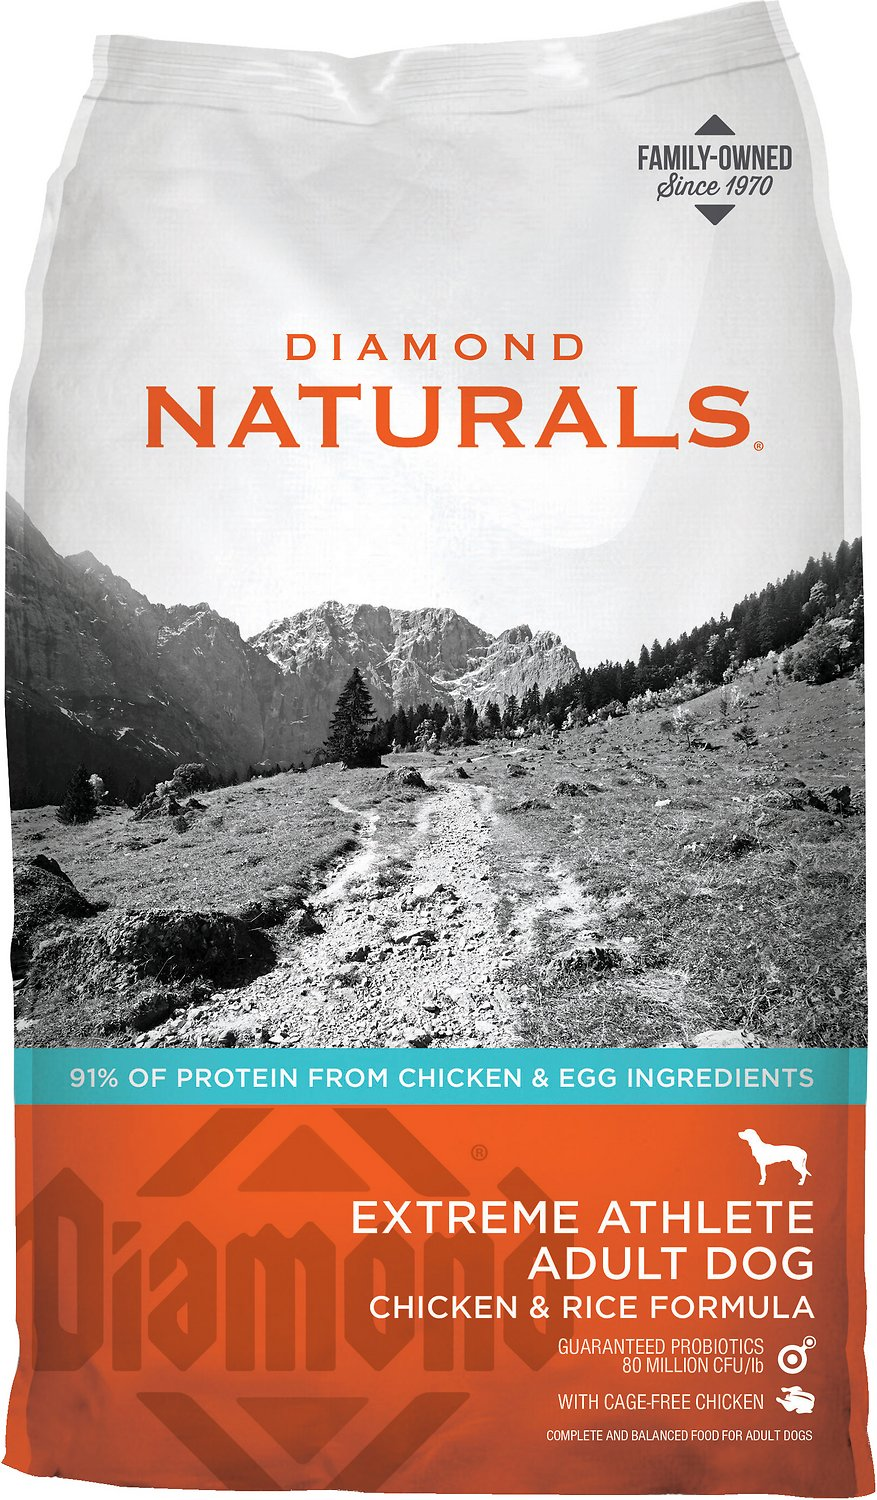 Diamond Naturals Extreme Athlete Formula Dry Dog Food, 40-lb bag (Weights: 40.0 pounds) Image